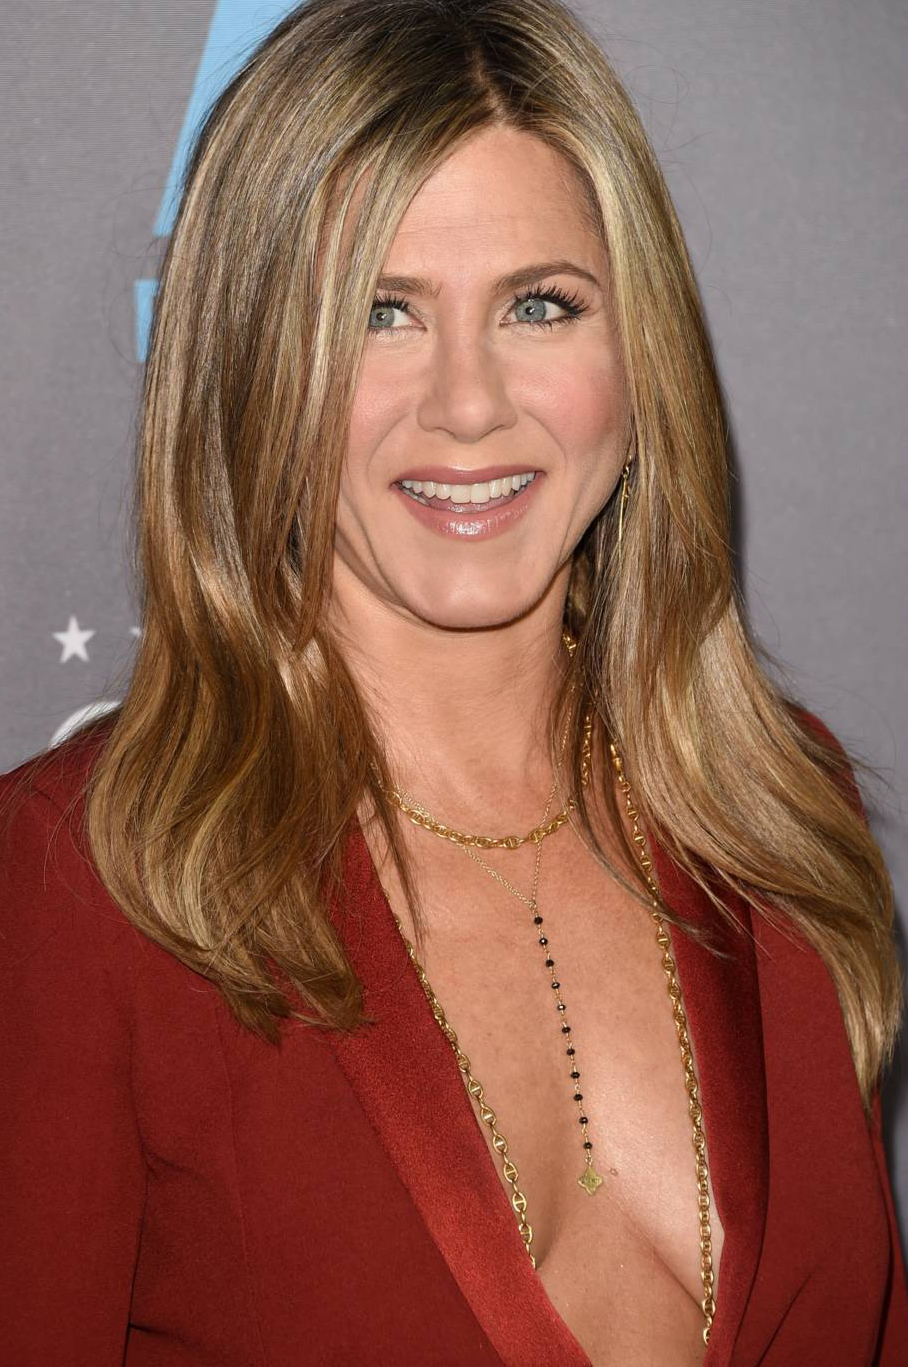 jennifer-aniston-body-chain-colar-red-carpet-tapete-vermelho